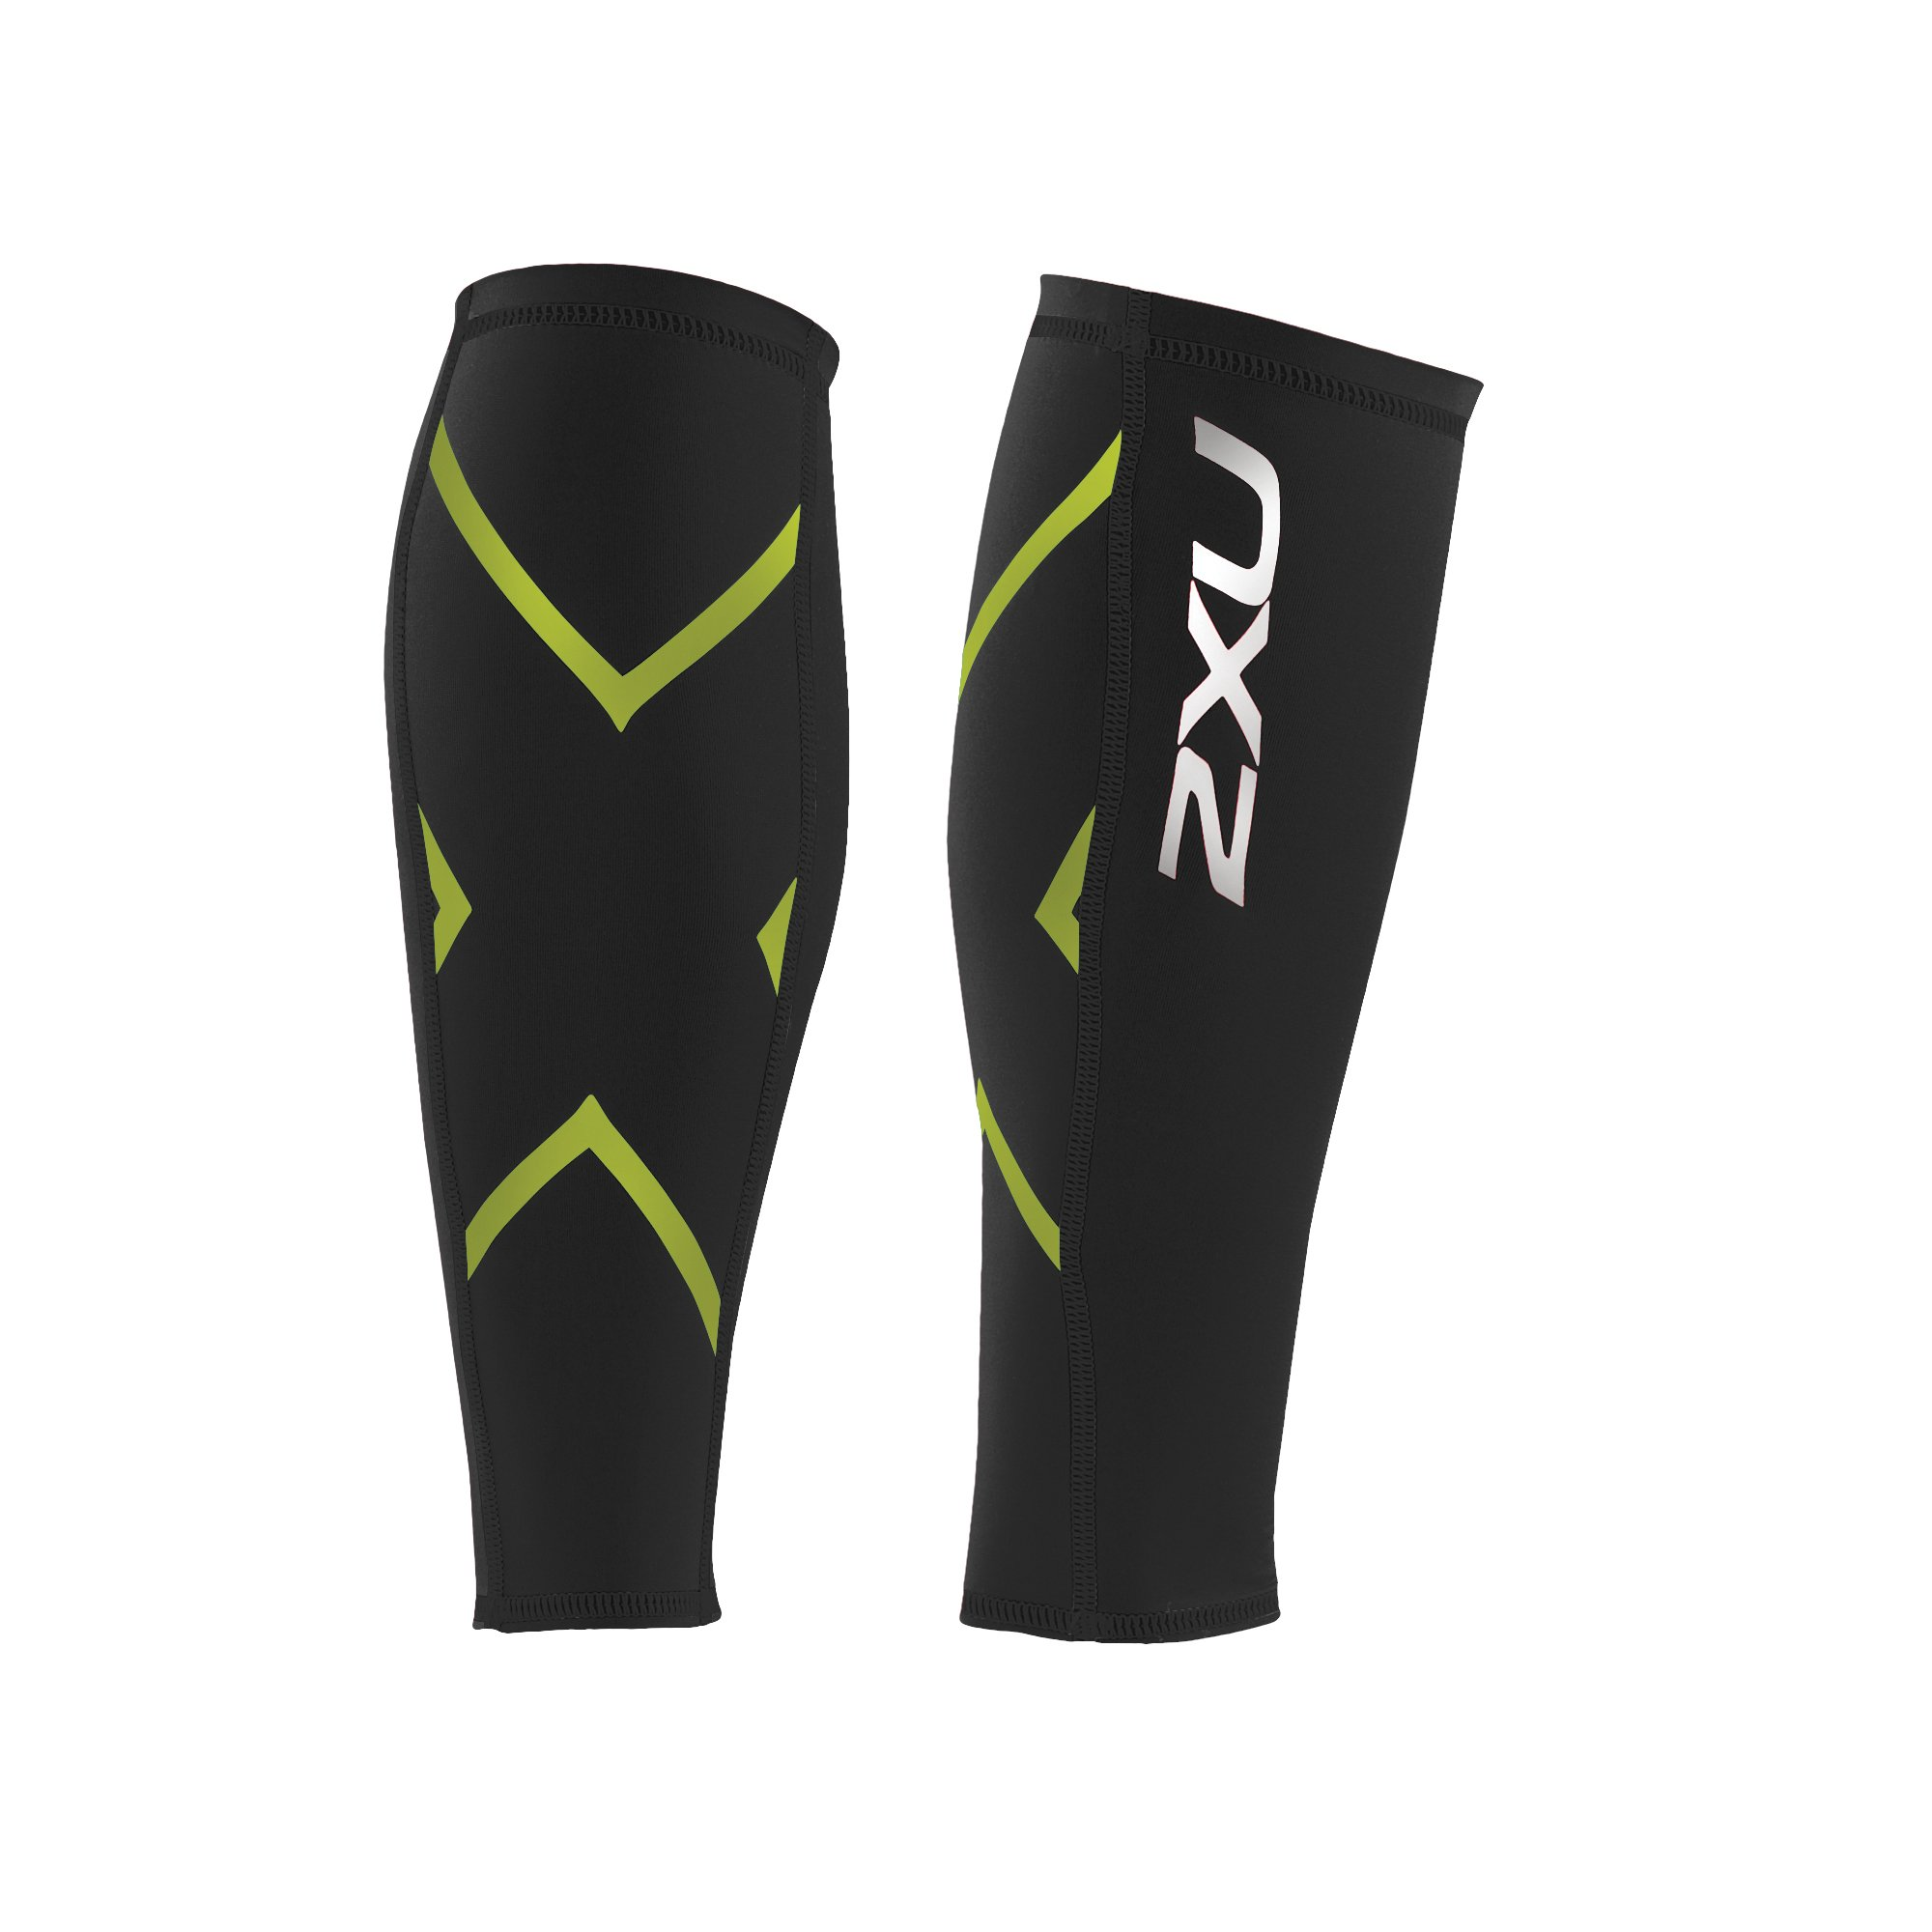 2XU Compression Calf Guards, Black/Bright